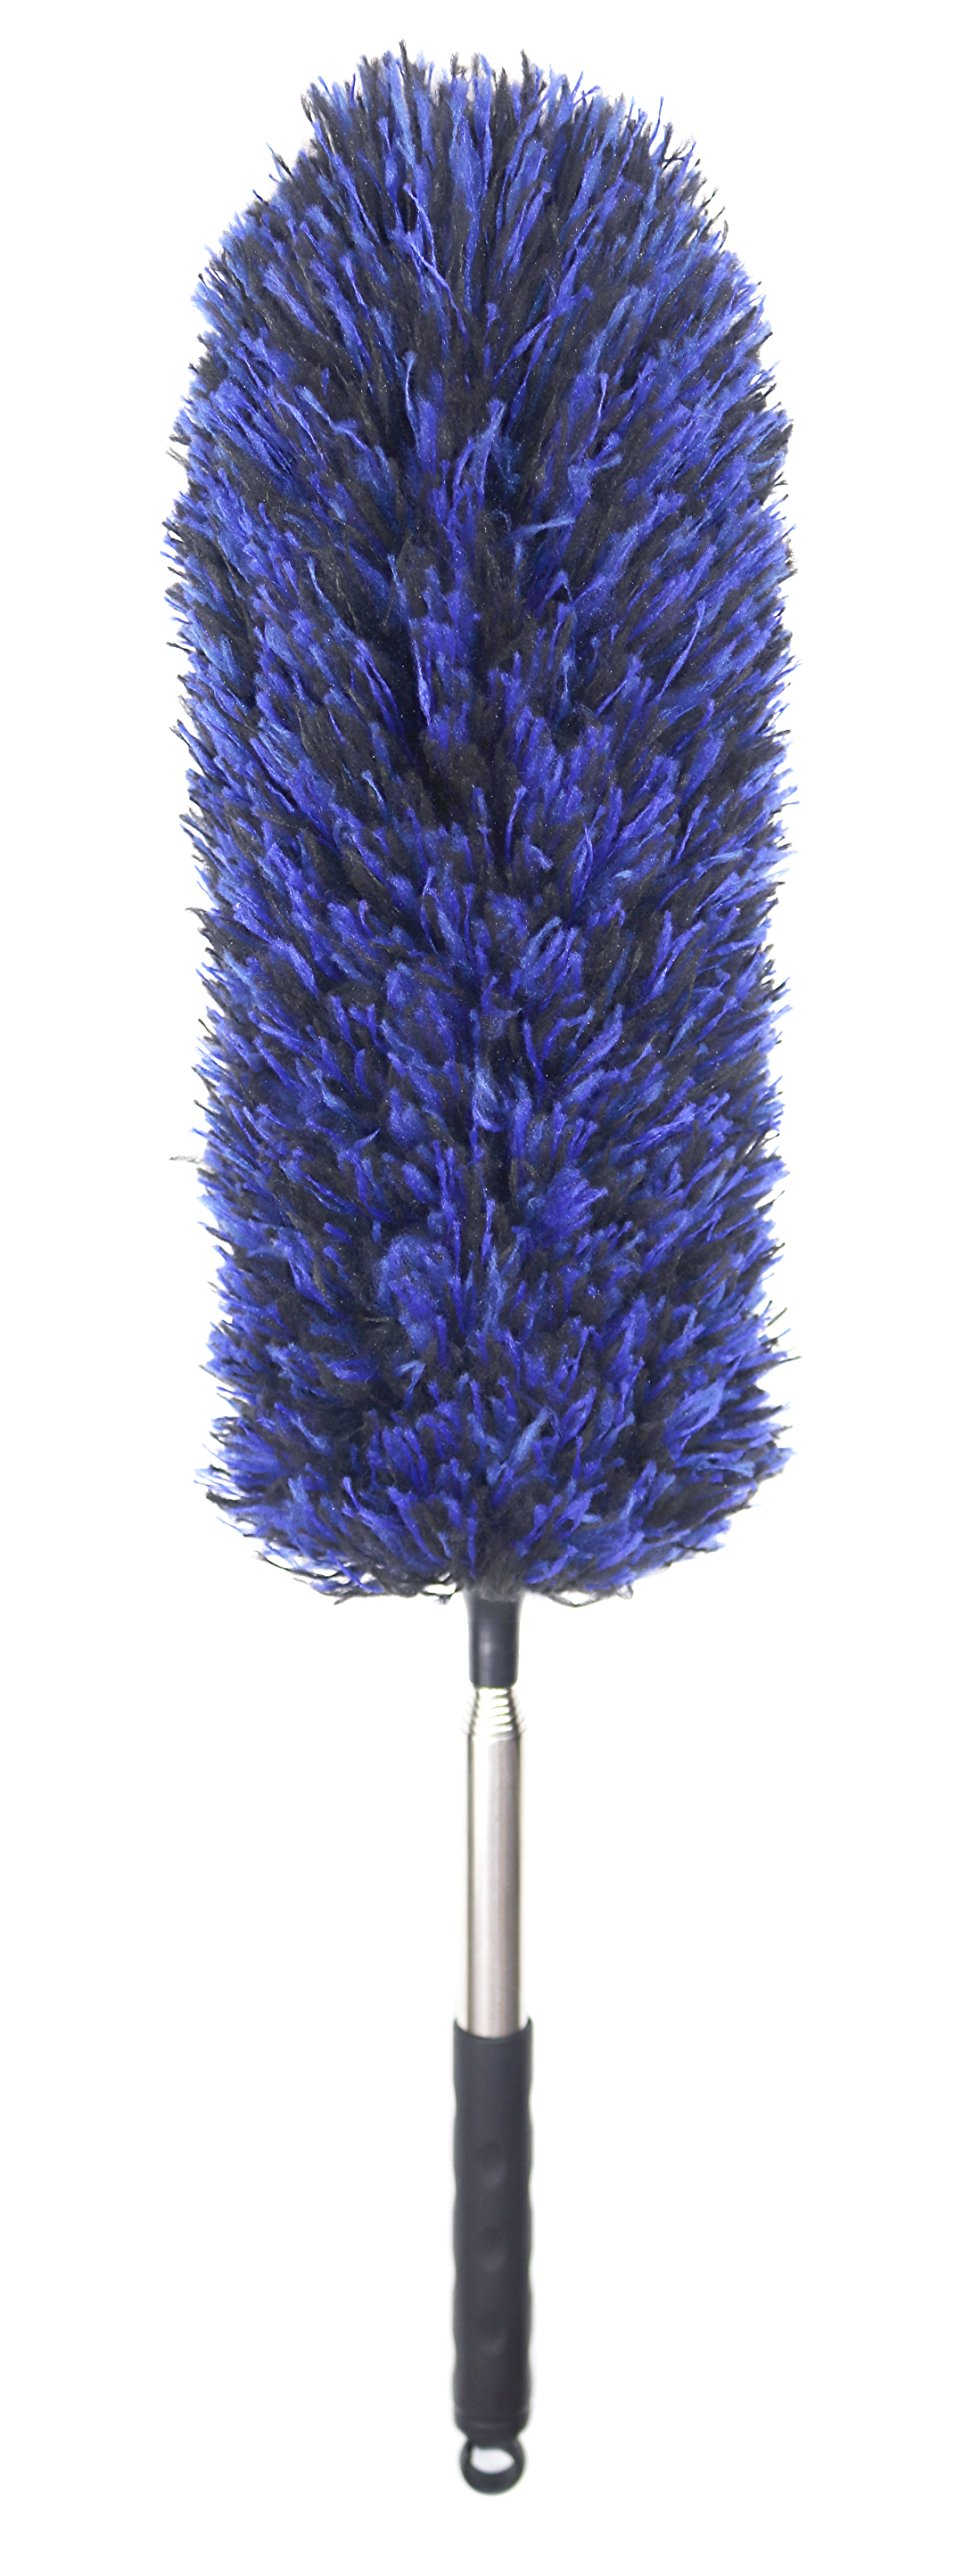 FO&OSOBEIT Straight Feather Duster Telescopic Pole Microfiber Duster Telescoping Handle Flexible Bendable Washable Hypoallergenic